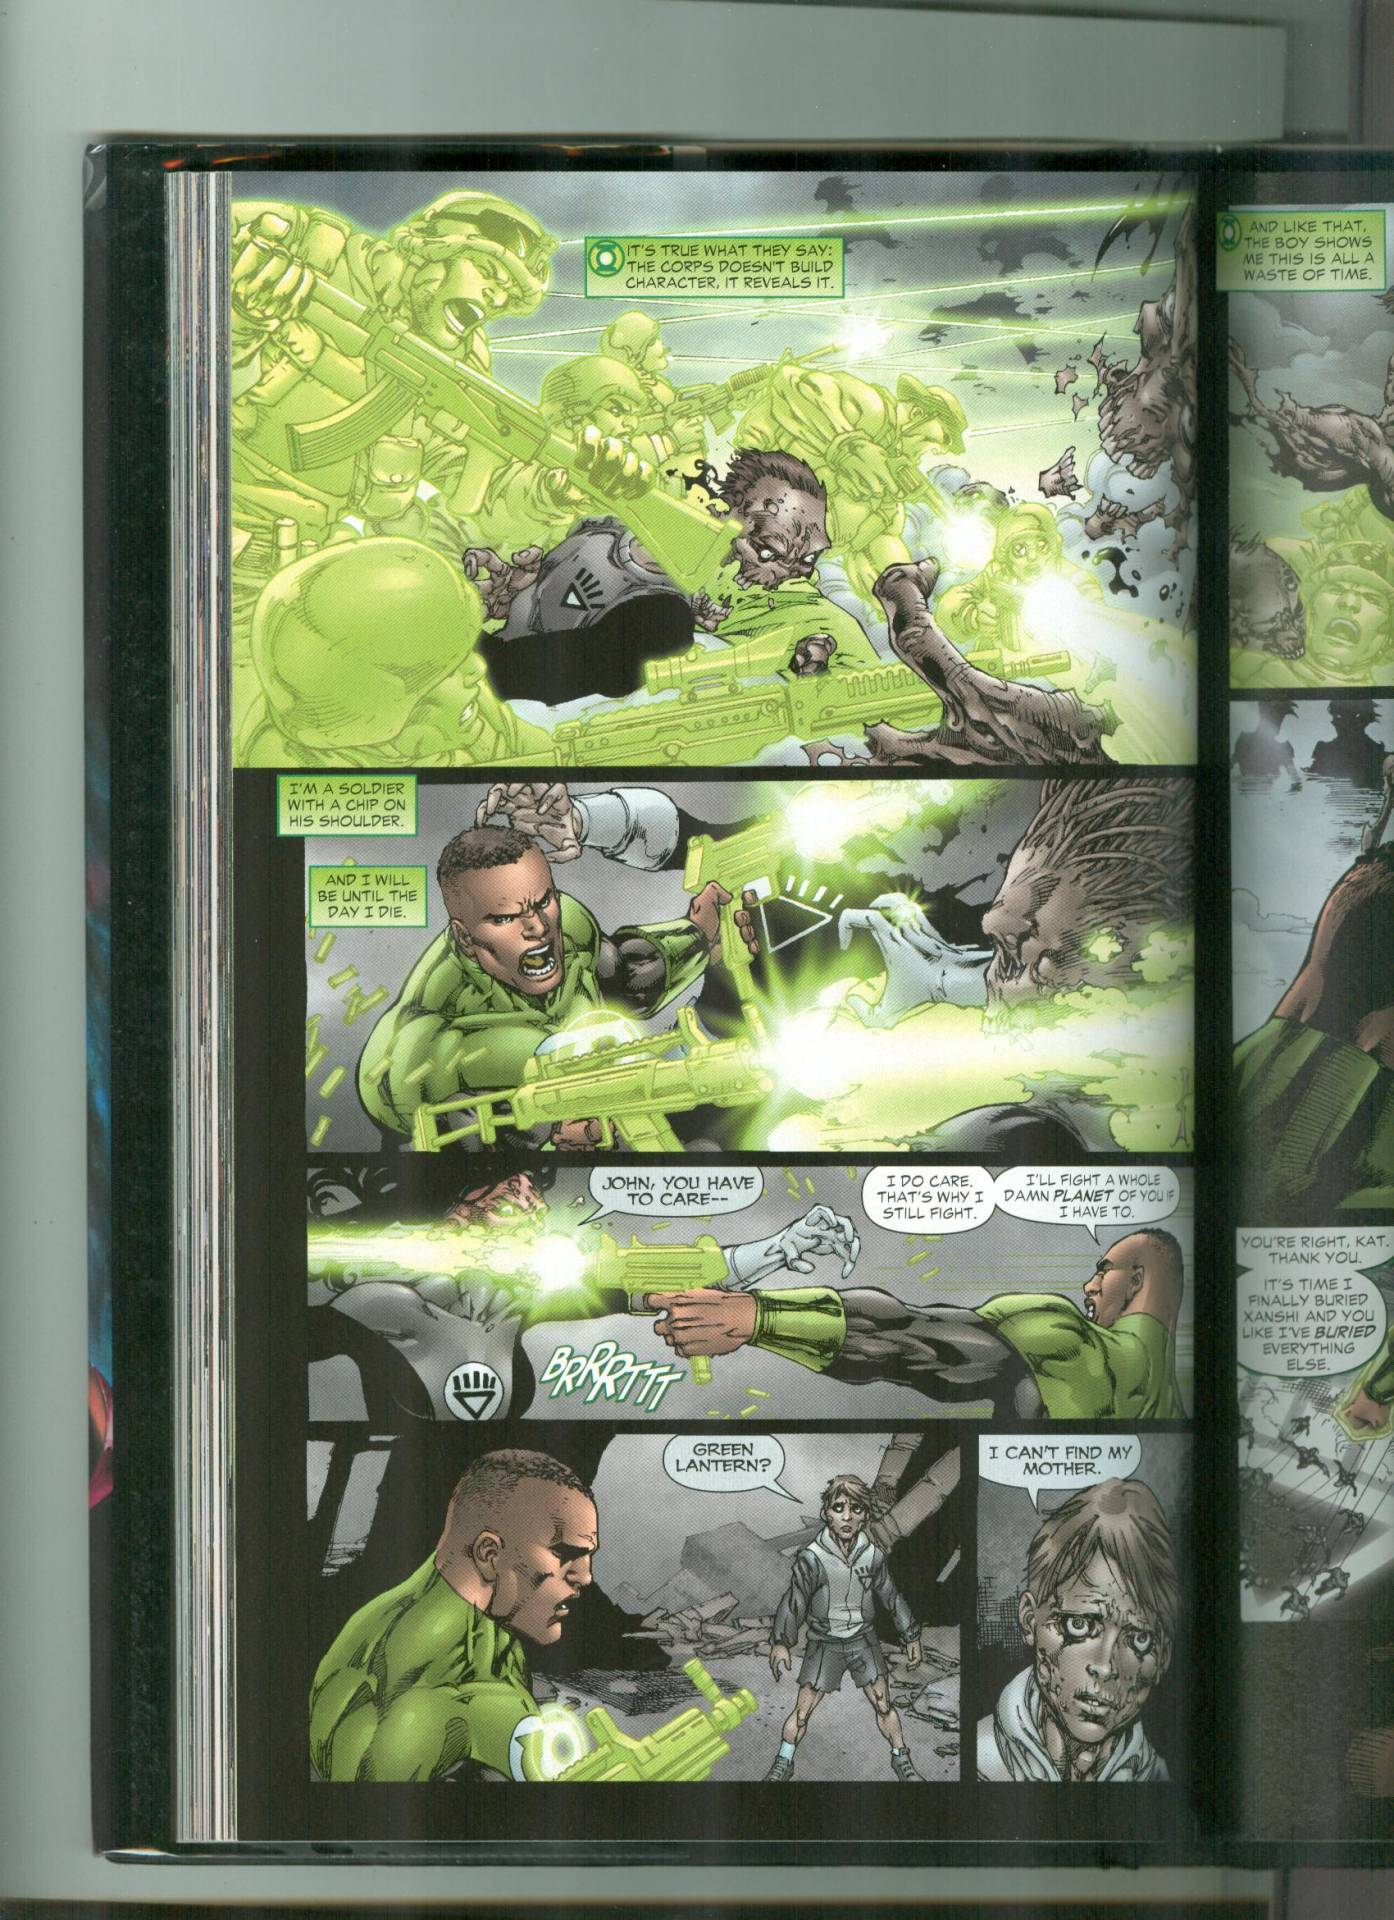 Creates a platoon of soldiers to fight off a planet full of Black Lanterns.